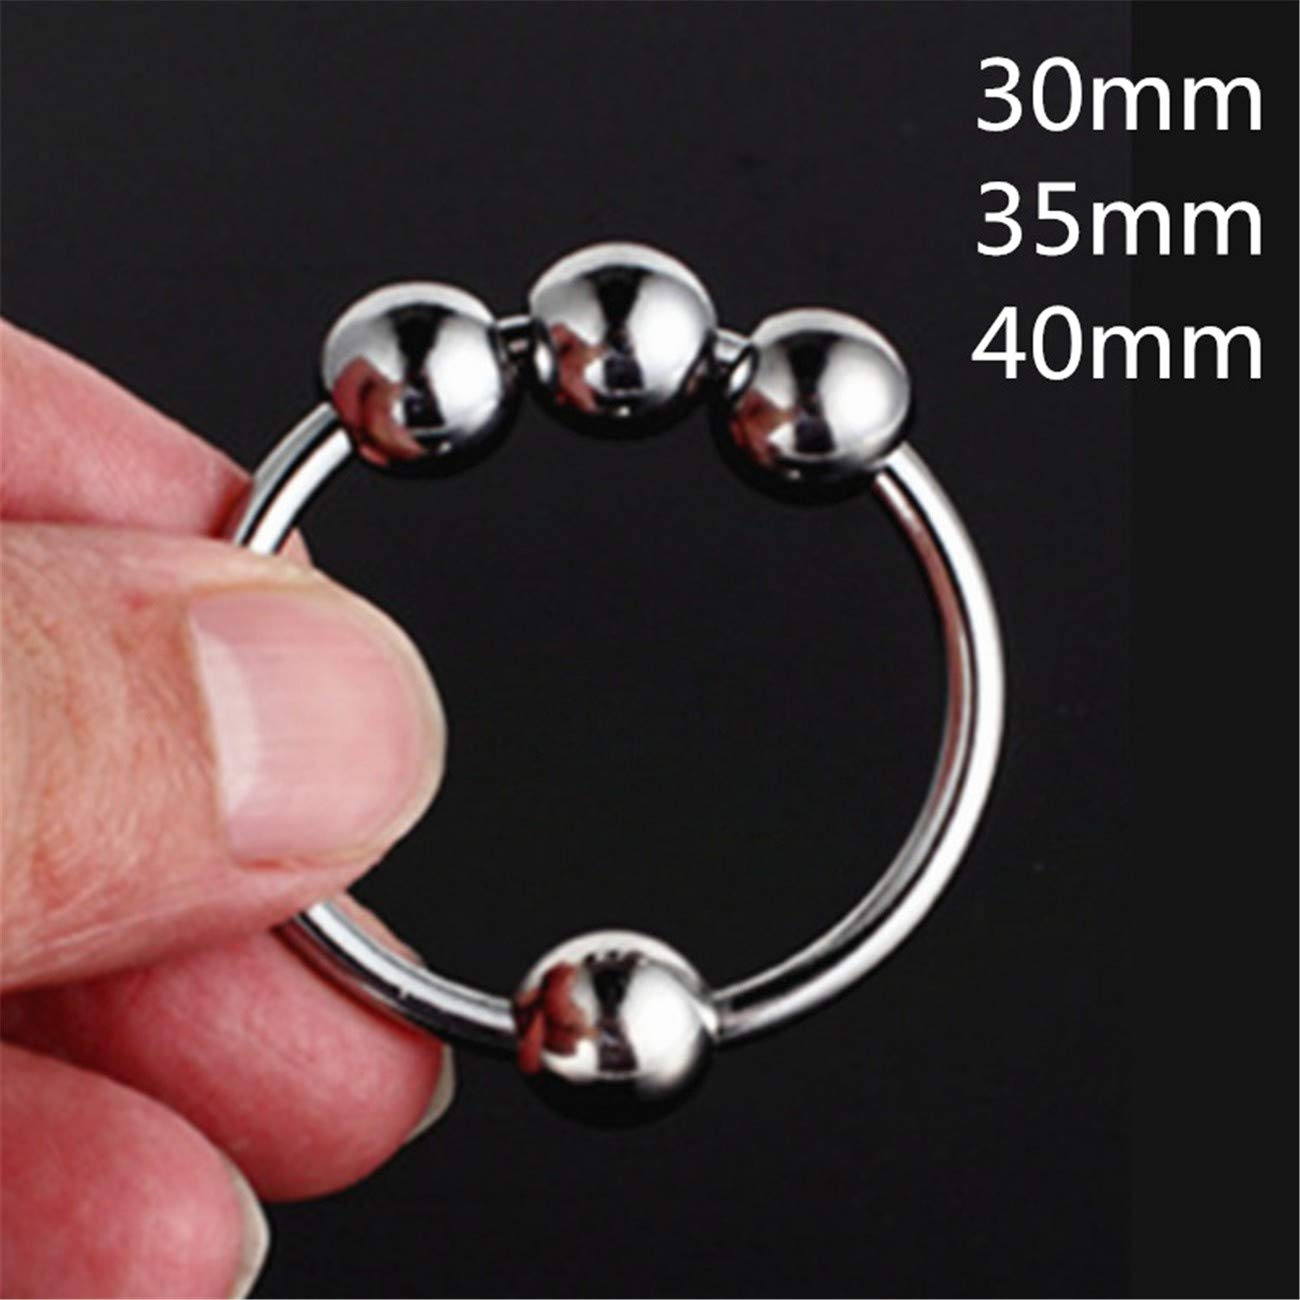 Beads 40Mm Stainless Steel Male Penis Ring Delay Ejaculation Newest Arrival C-ock R-ing with 4 Vibrating Bullet Glans Silicone Vibrator Beads for Male Adult Sex Toy G7-32 Silver L by Carlos Foushee (Image #1)